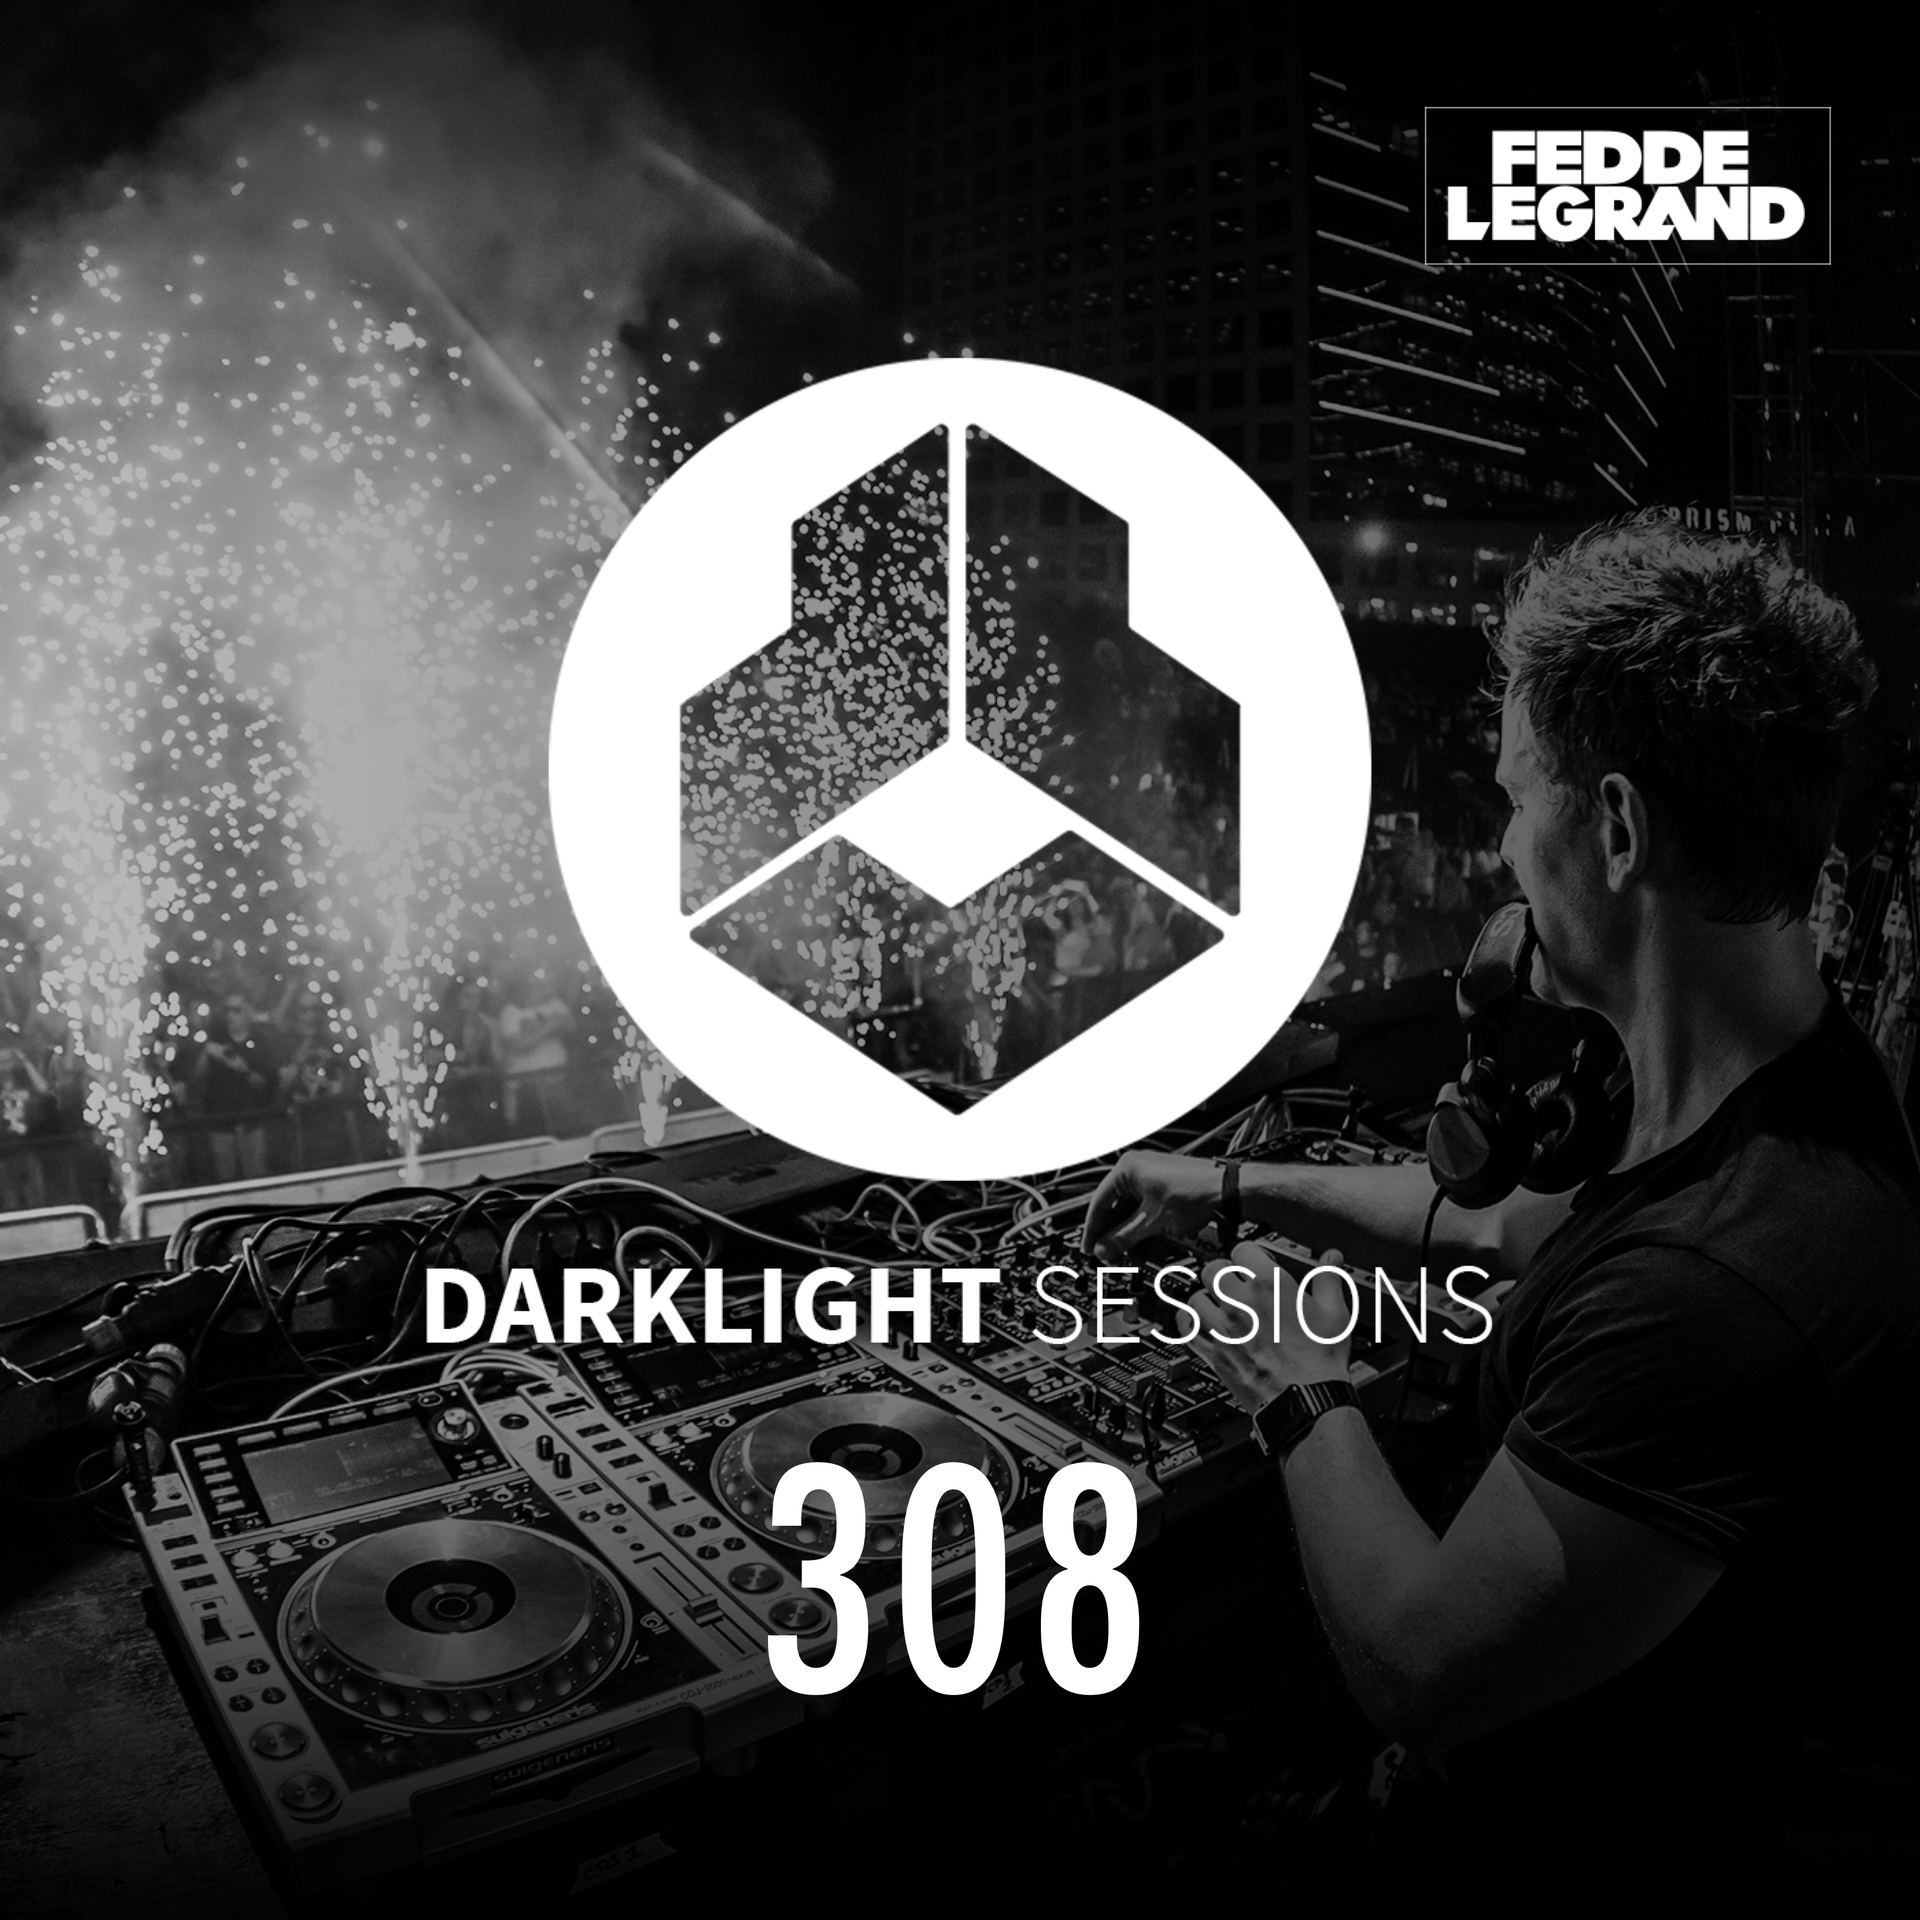 Darklight Sessions 308